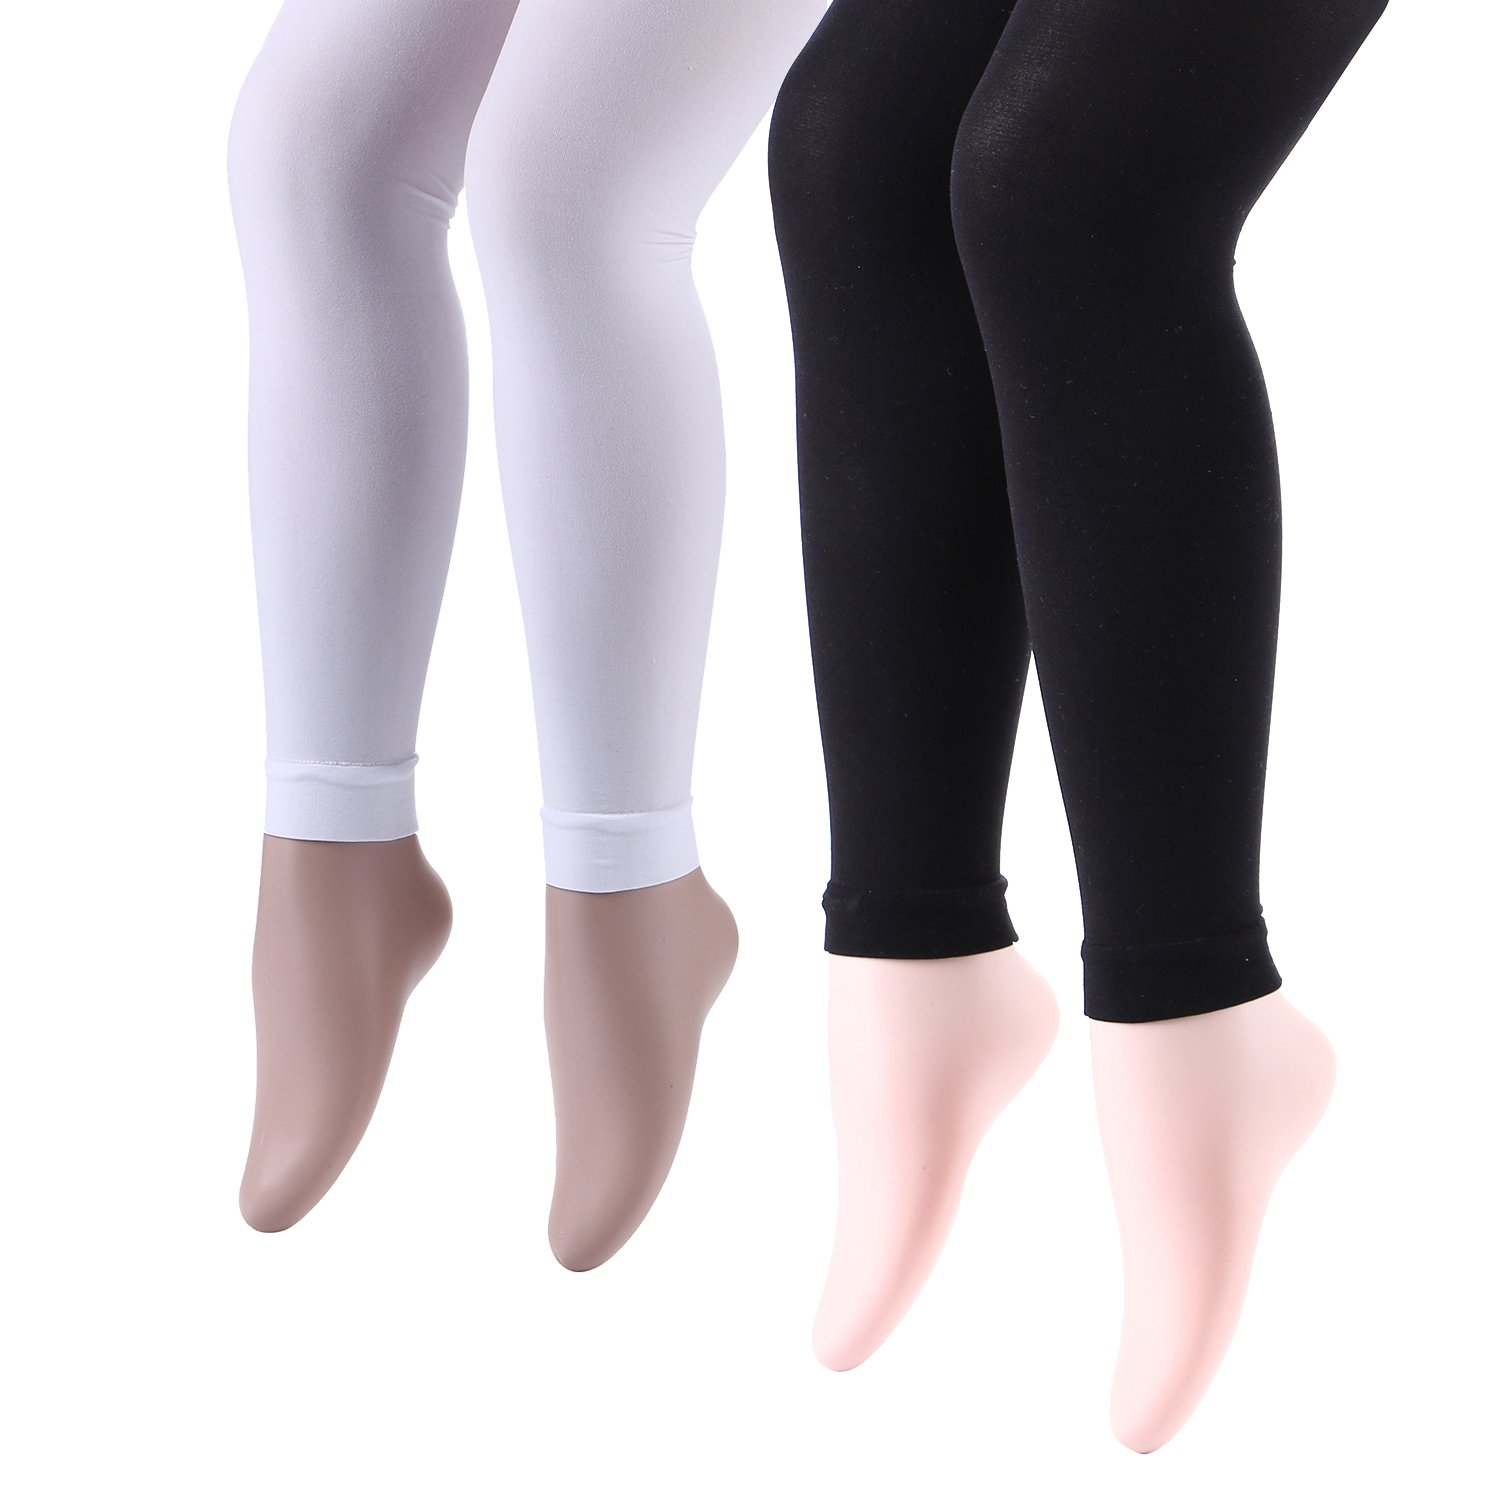 Elitimmy Big Girls Black and White 2 Pairs Footless Tights